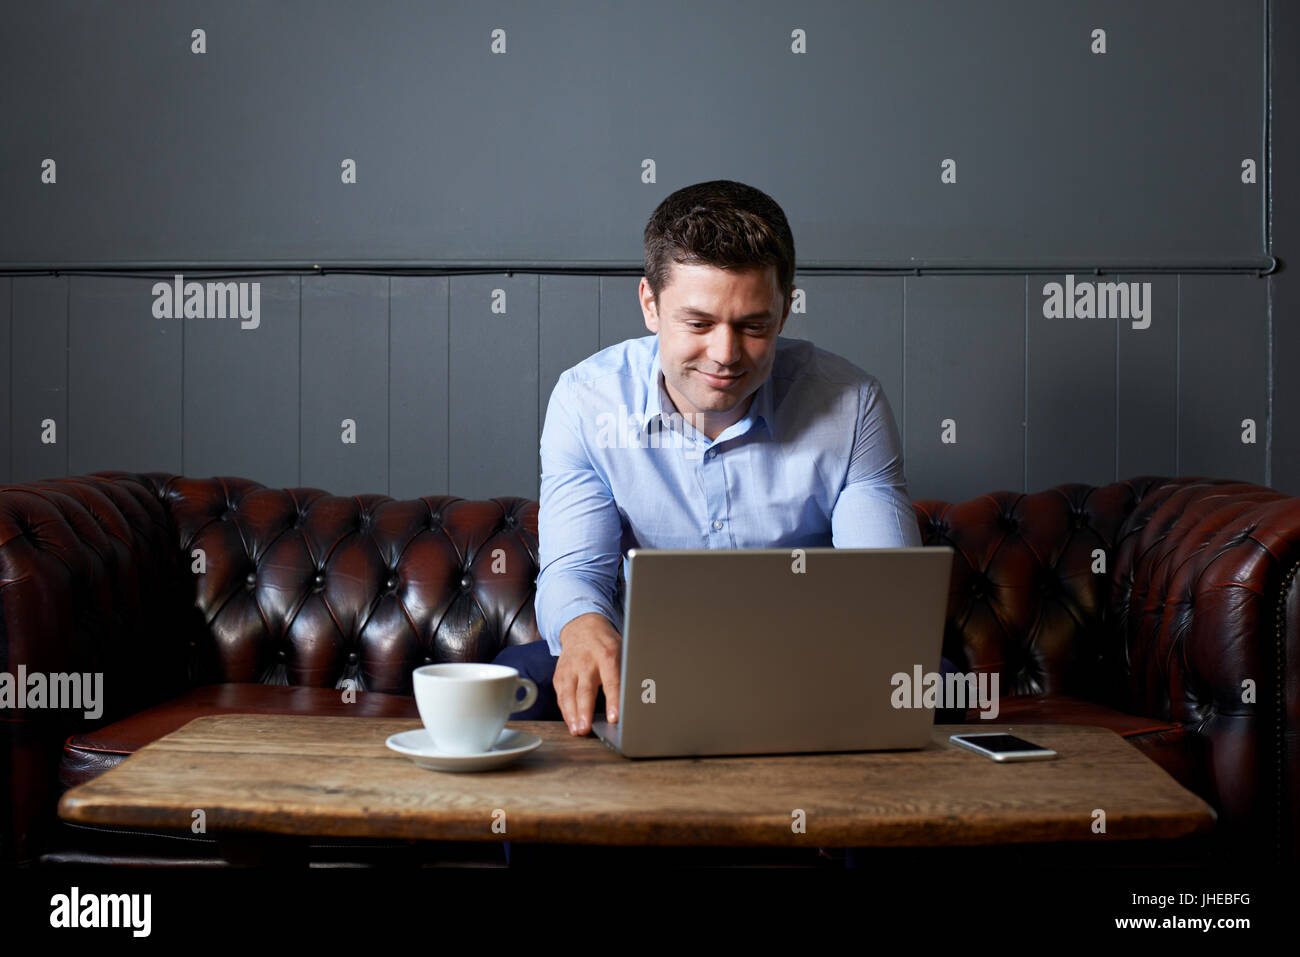 Man working on Laptop In Internet Cafe Photo Stock